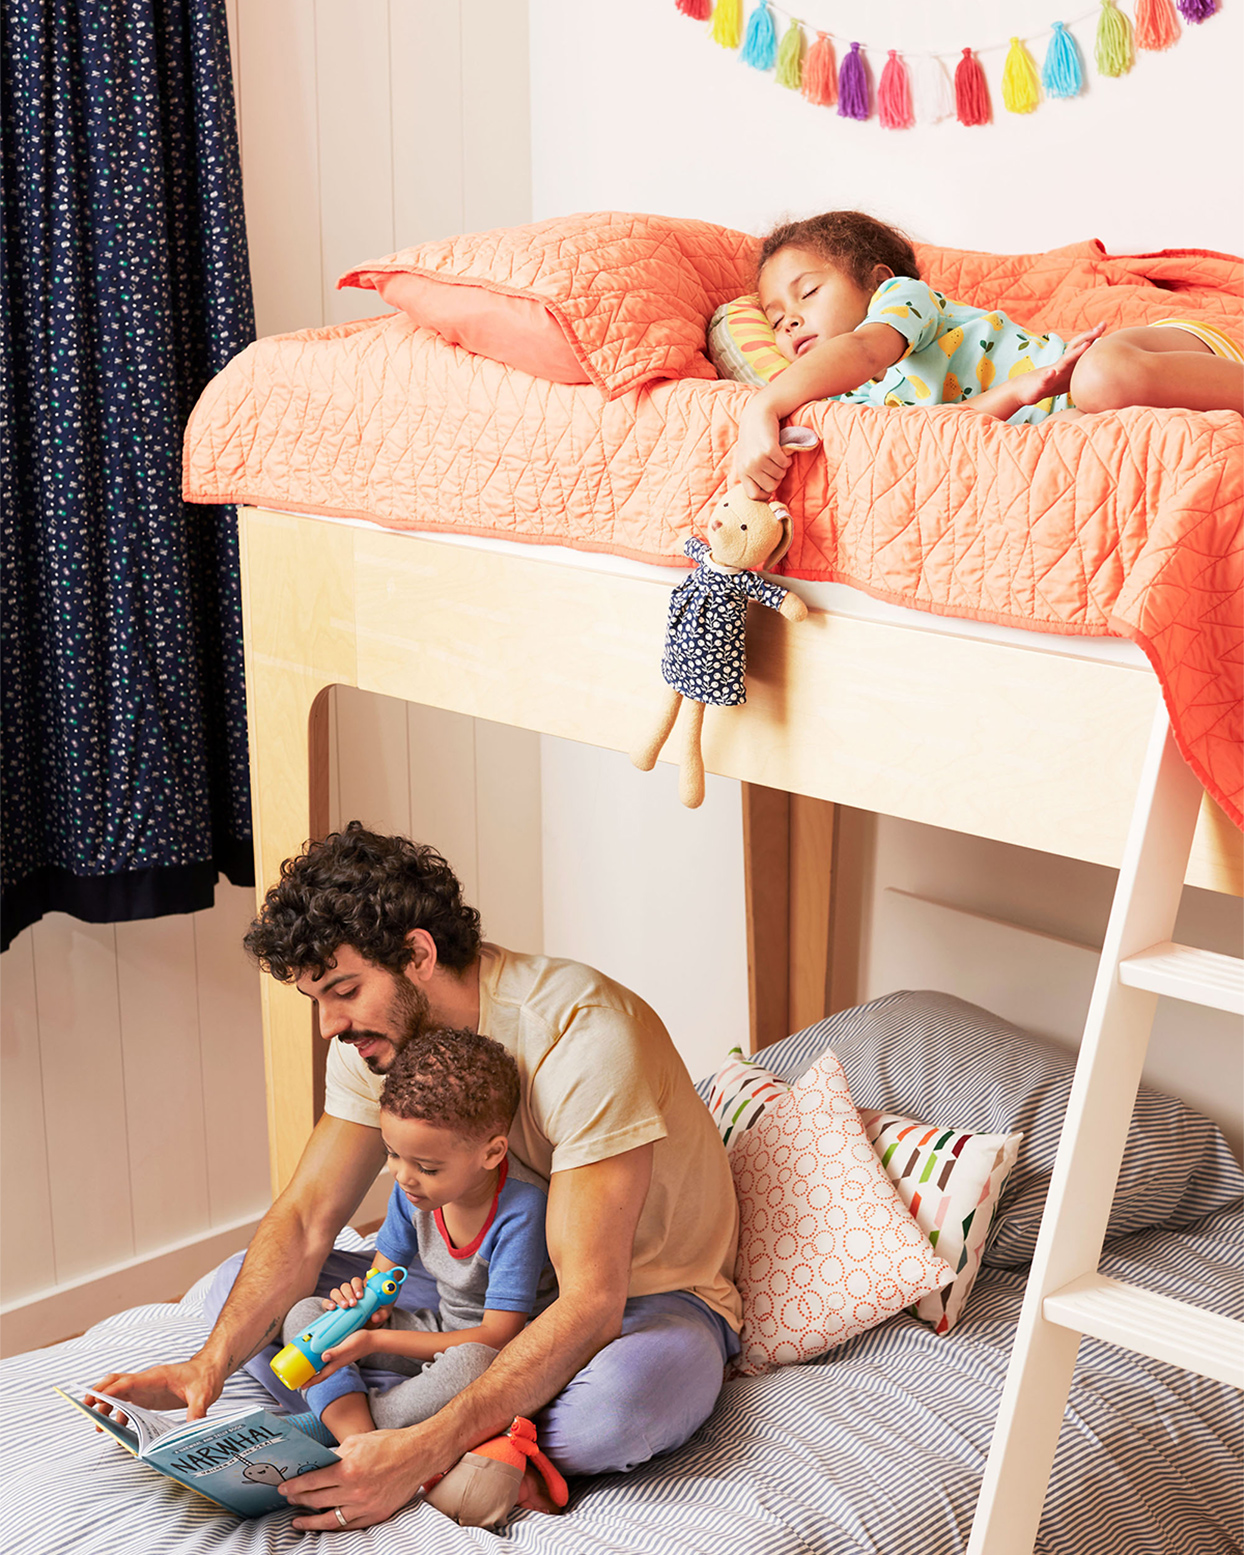 5 Things That Can Make Distance Learning Much Easier for the Entire Family